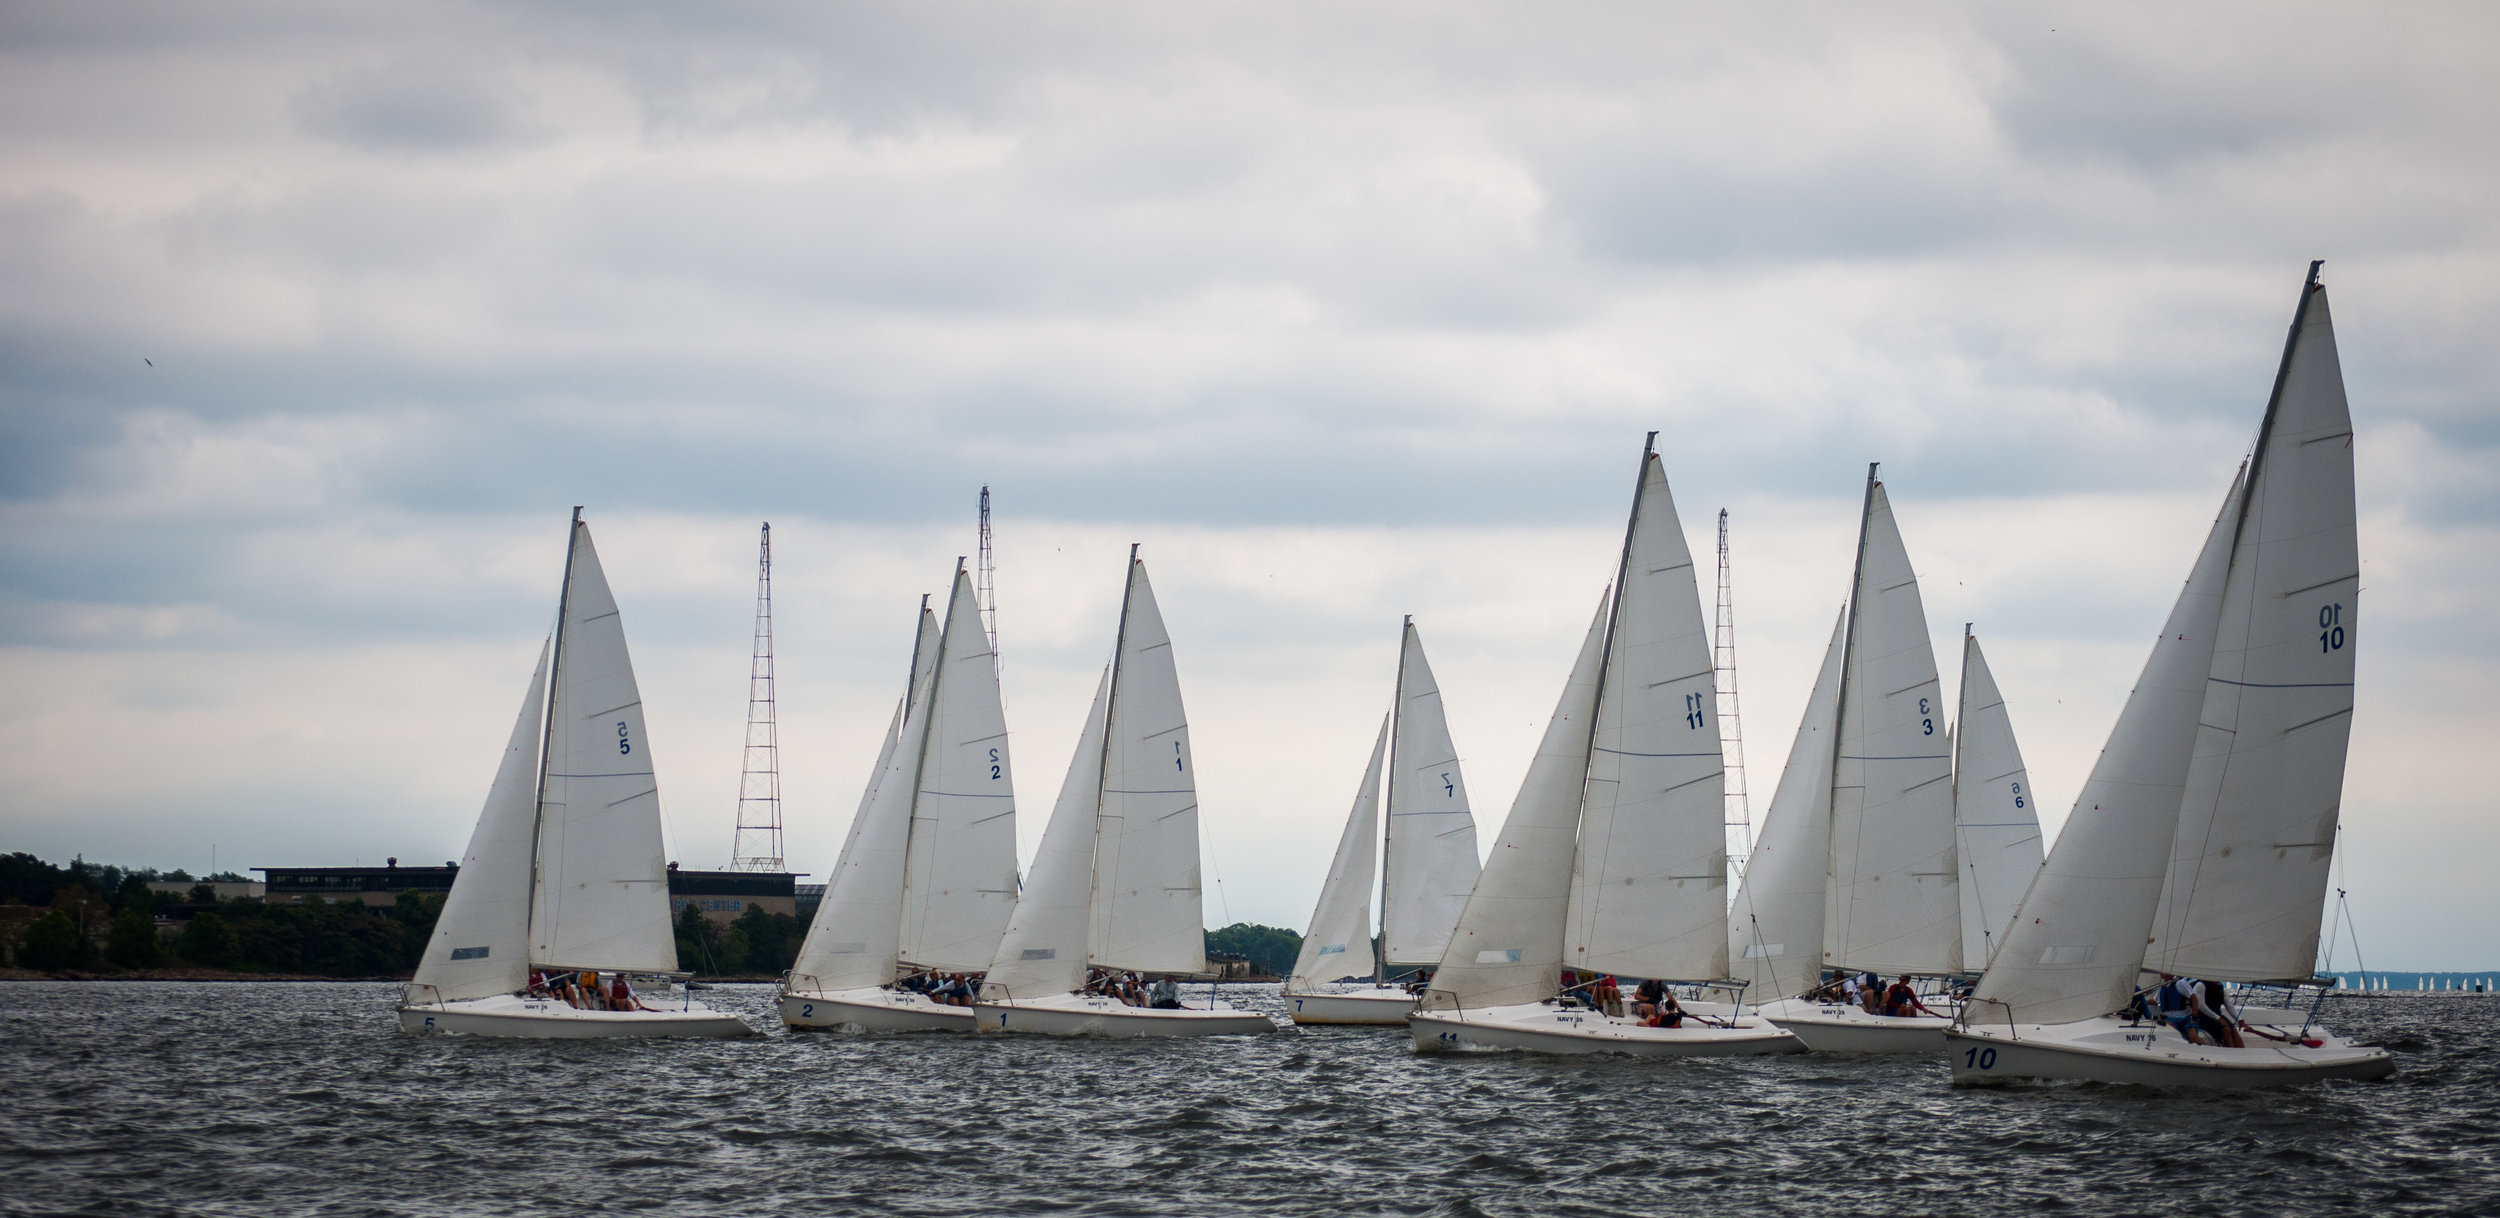 The Robert Crown Sailing Center played host to approximately 60 former sailing team graduates and staff members.